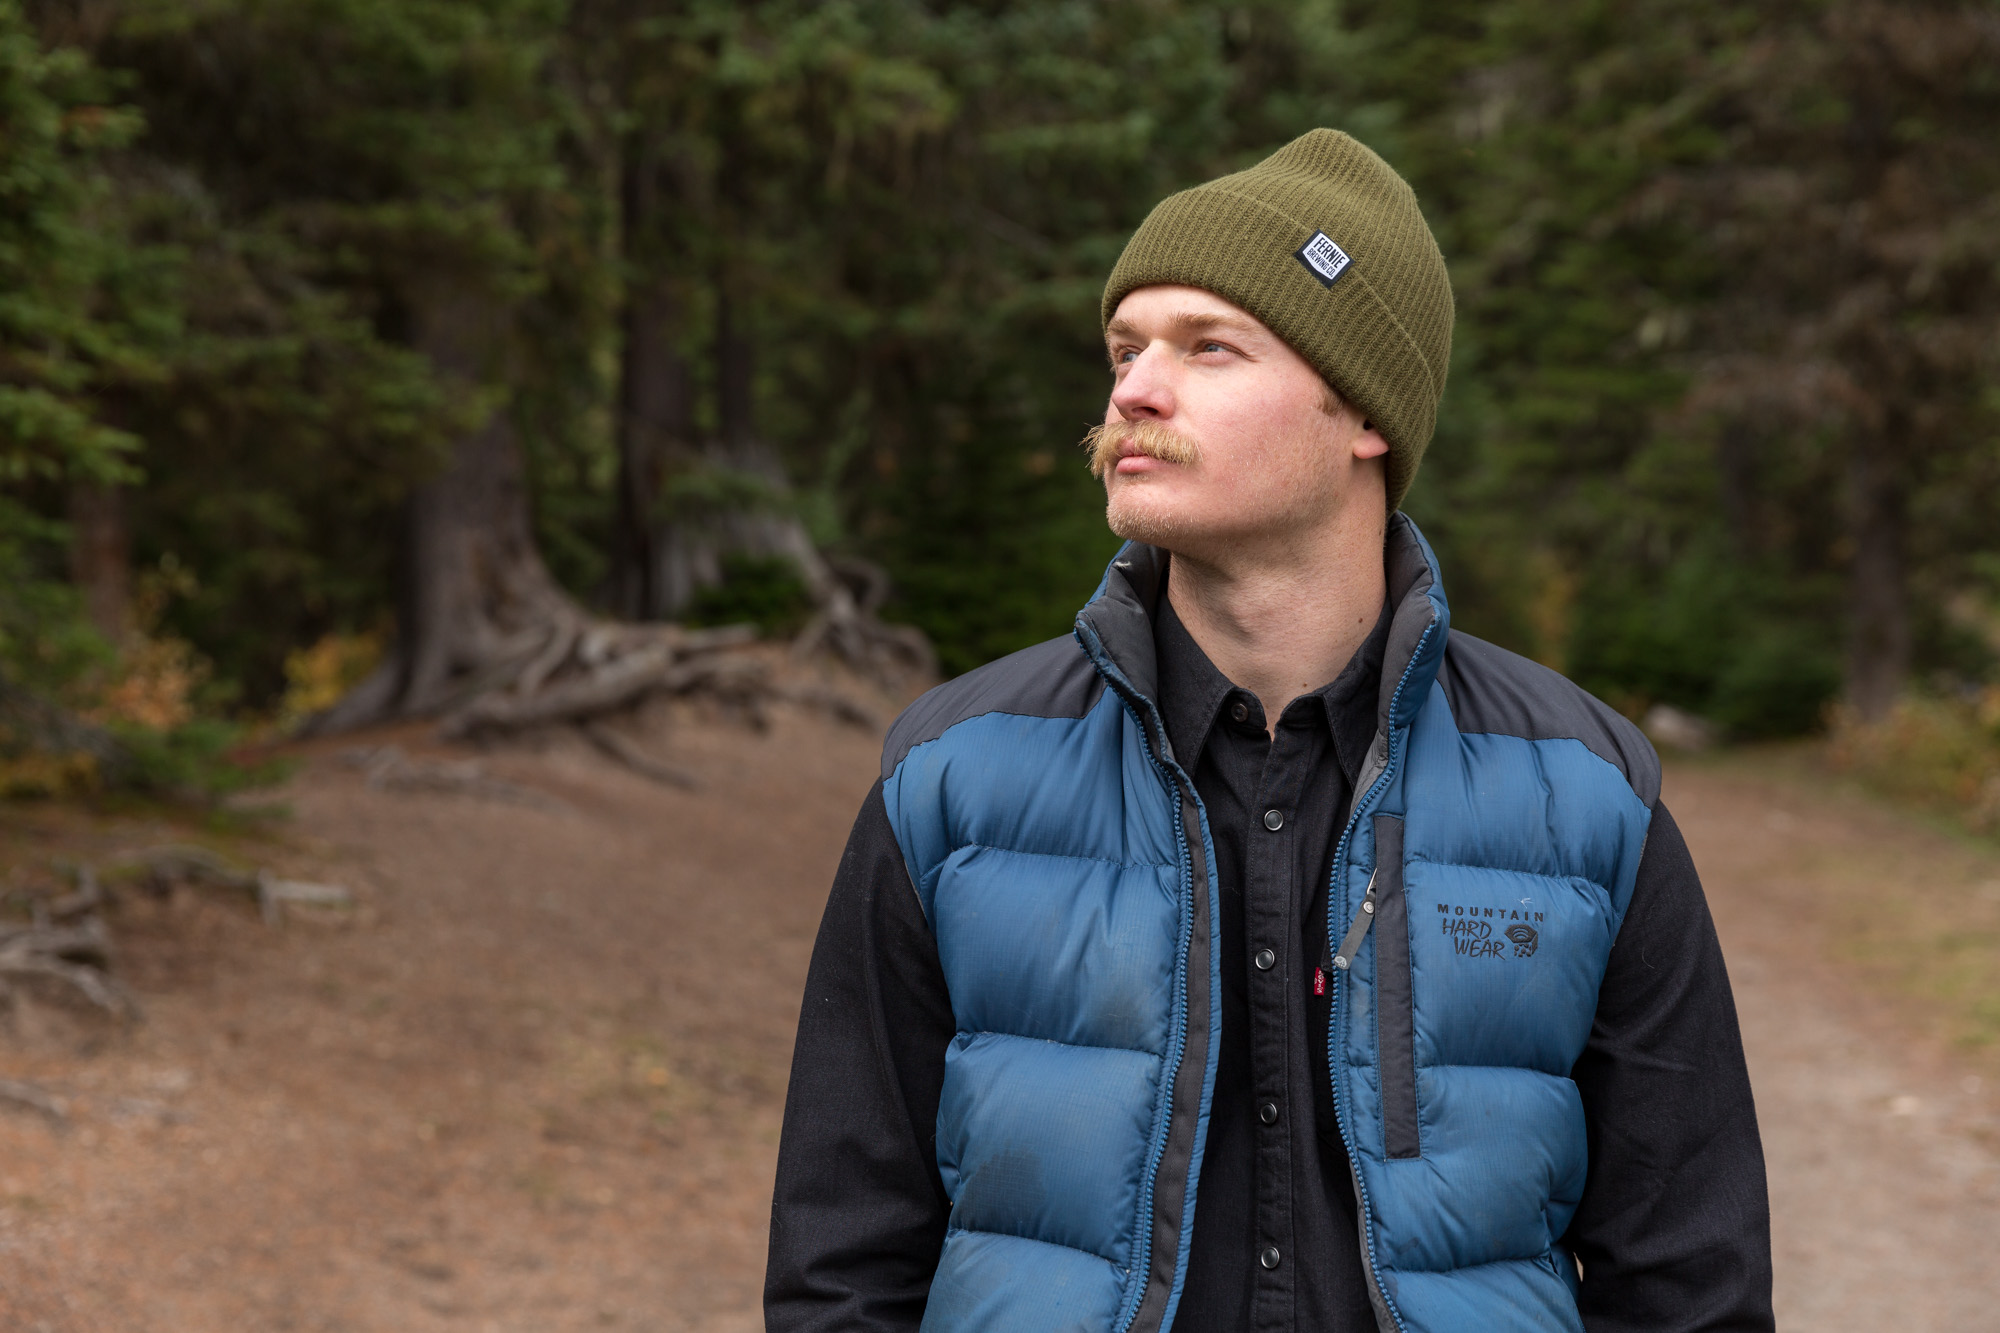 Man in blue vest wearing green toque looking into the distance in the forest.